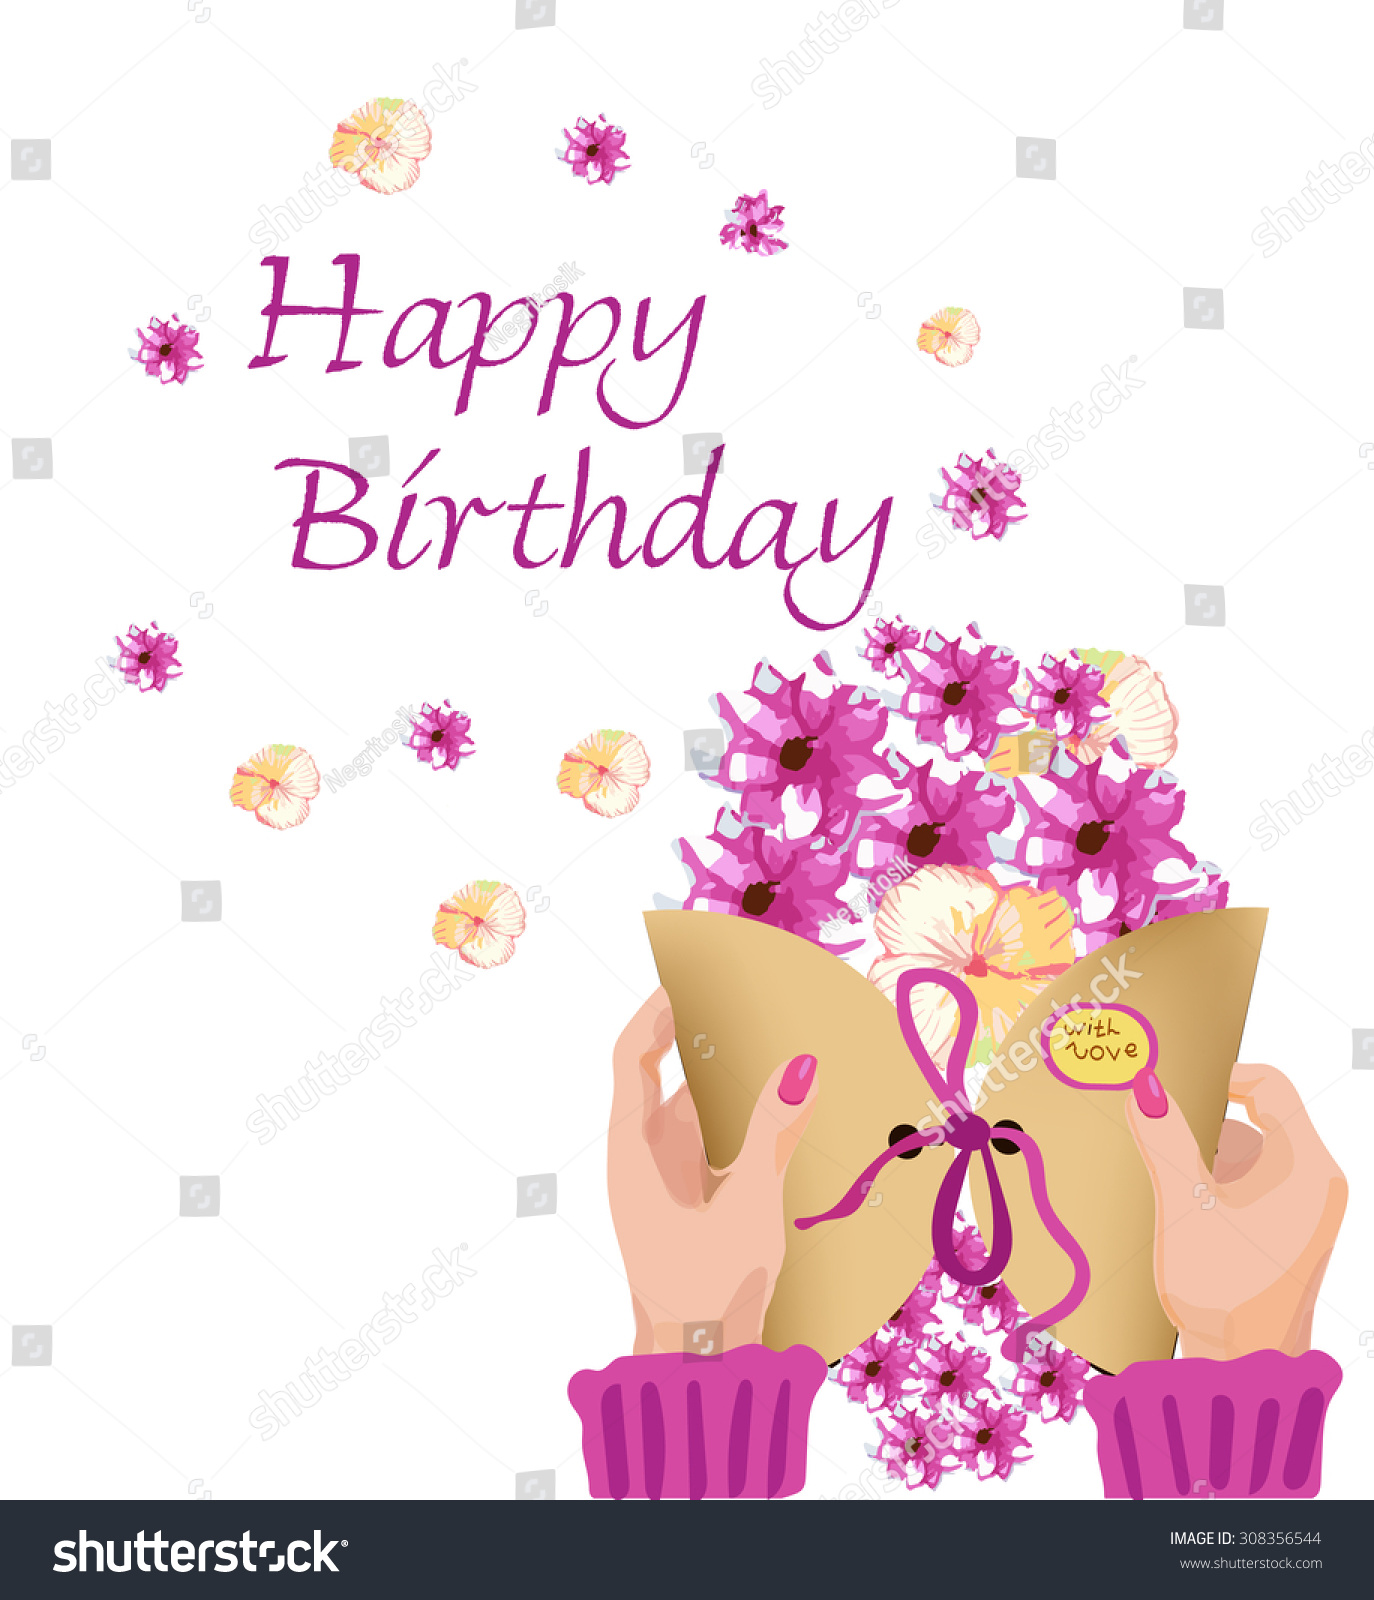 happy birthday pictures for a woman ; stock-vector-greeting-card-happy-birthday-with-women-s-hands-envelope-and-flowers-308356544